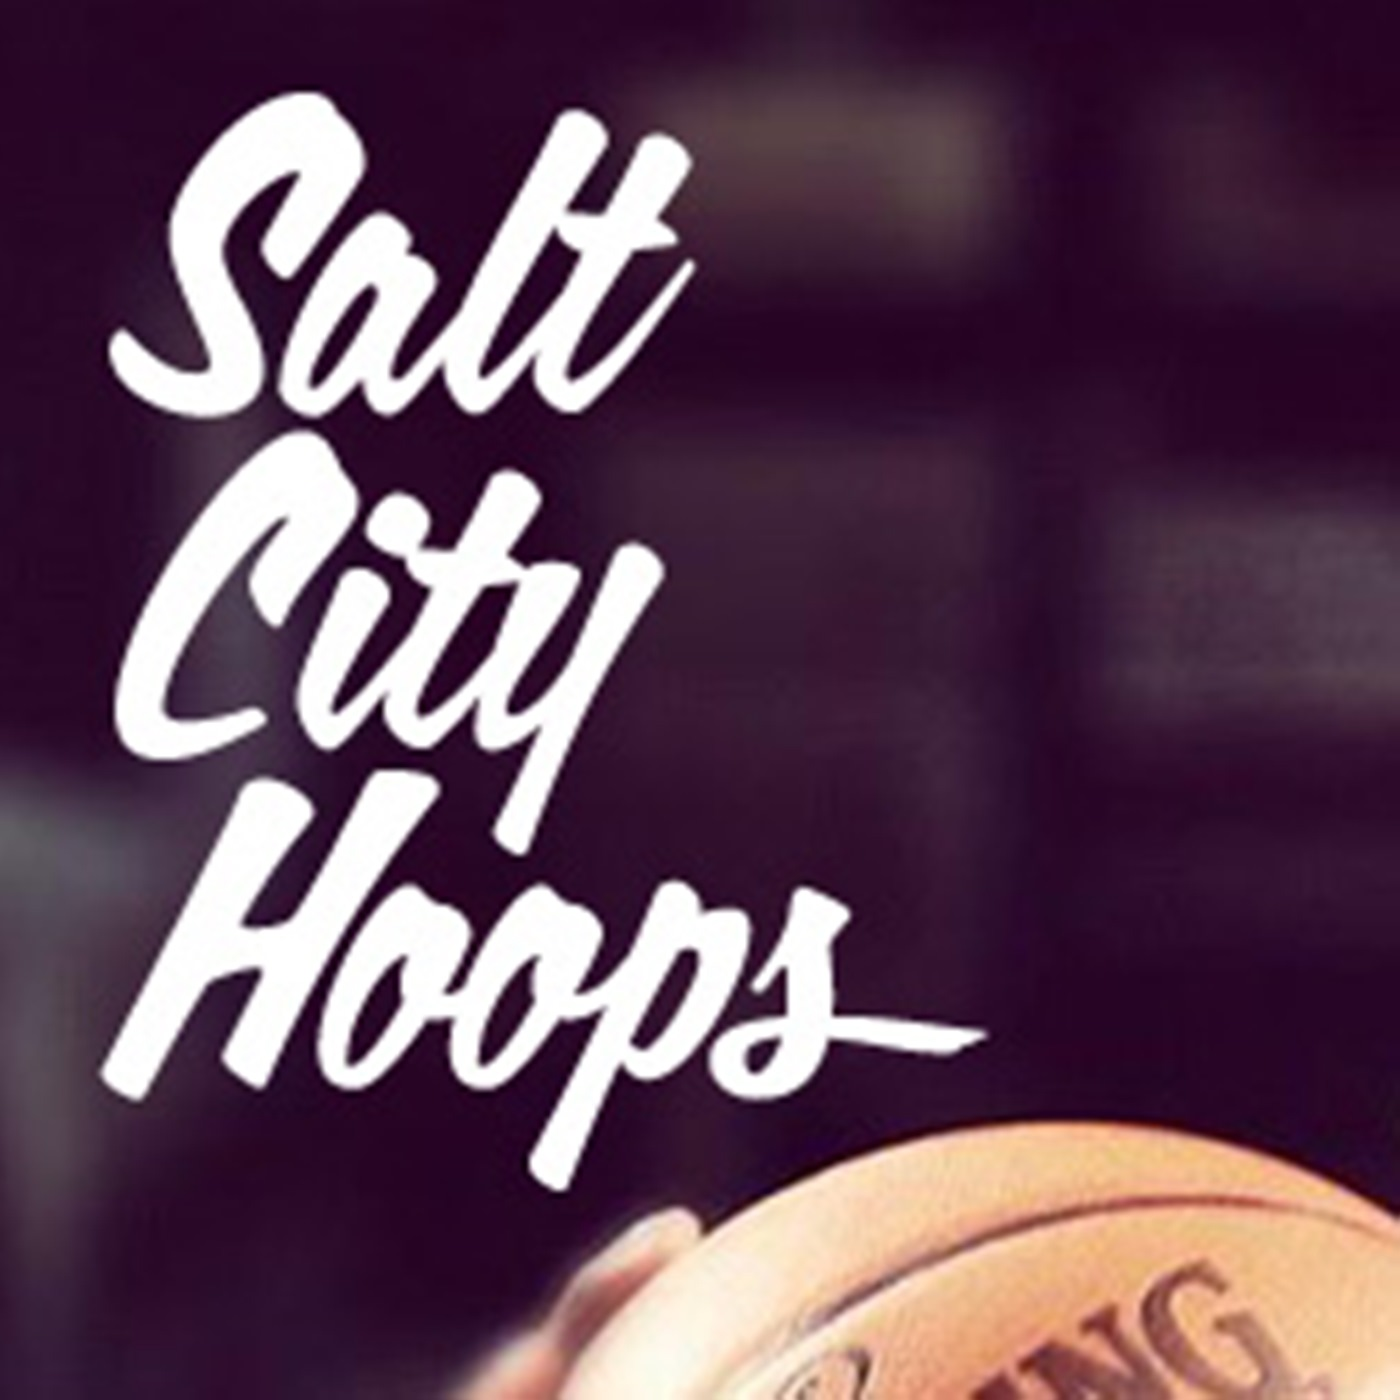 Salt City Hoops Radio